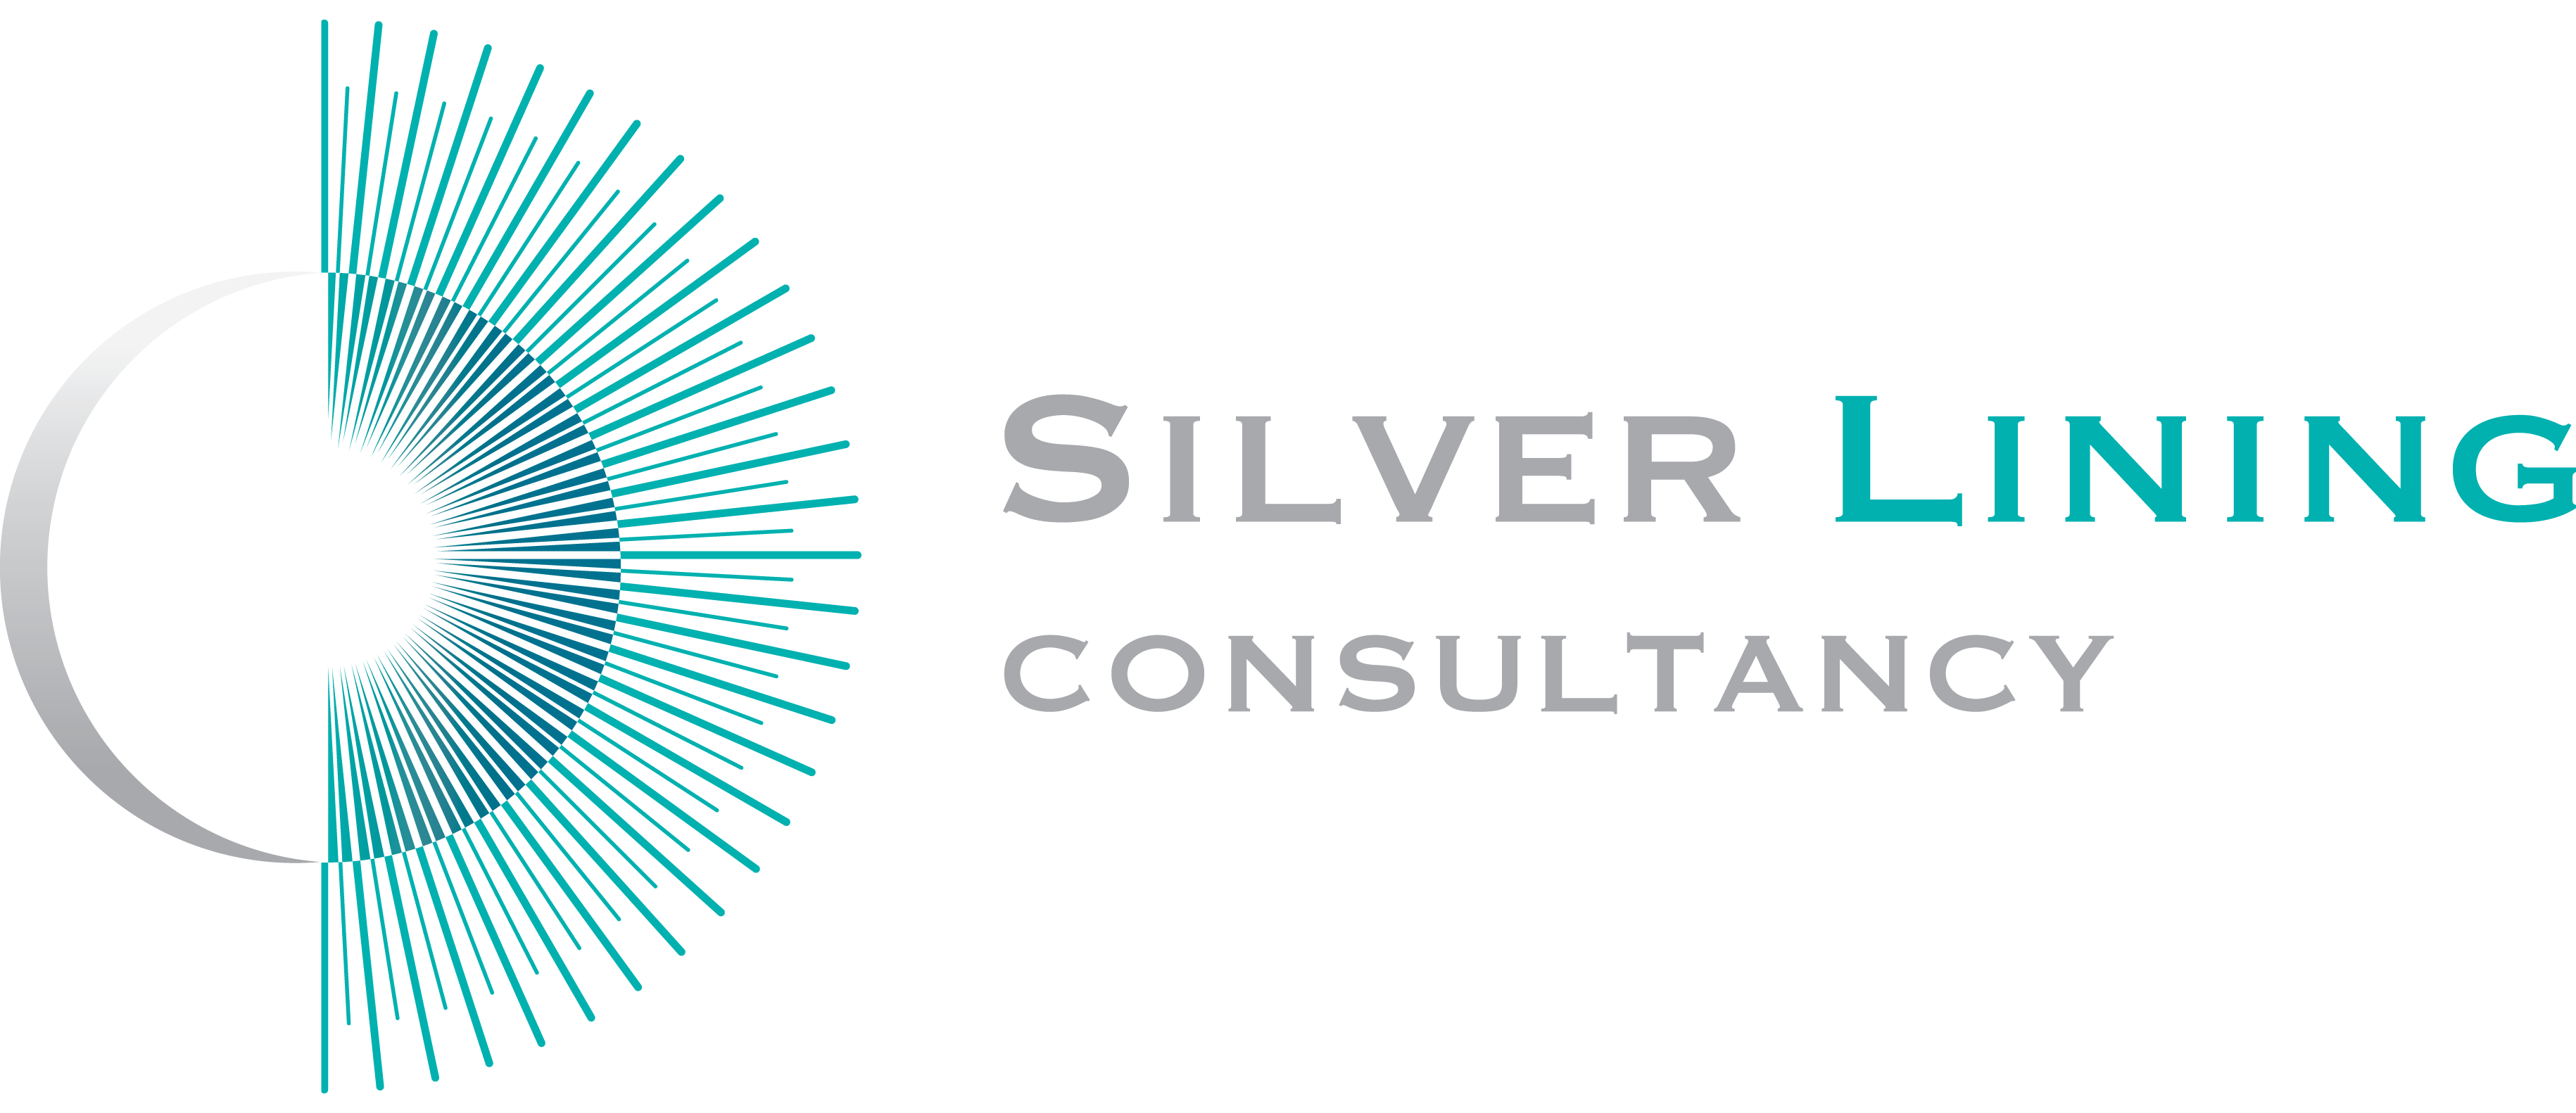 Silver Lining Consultancy